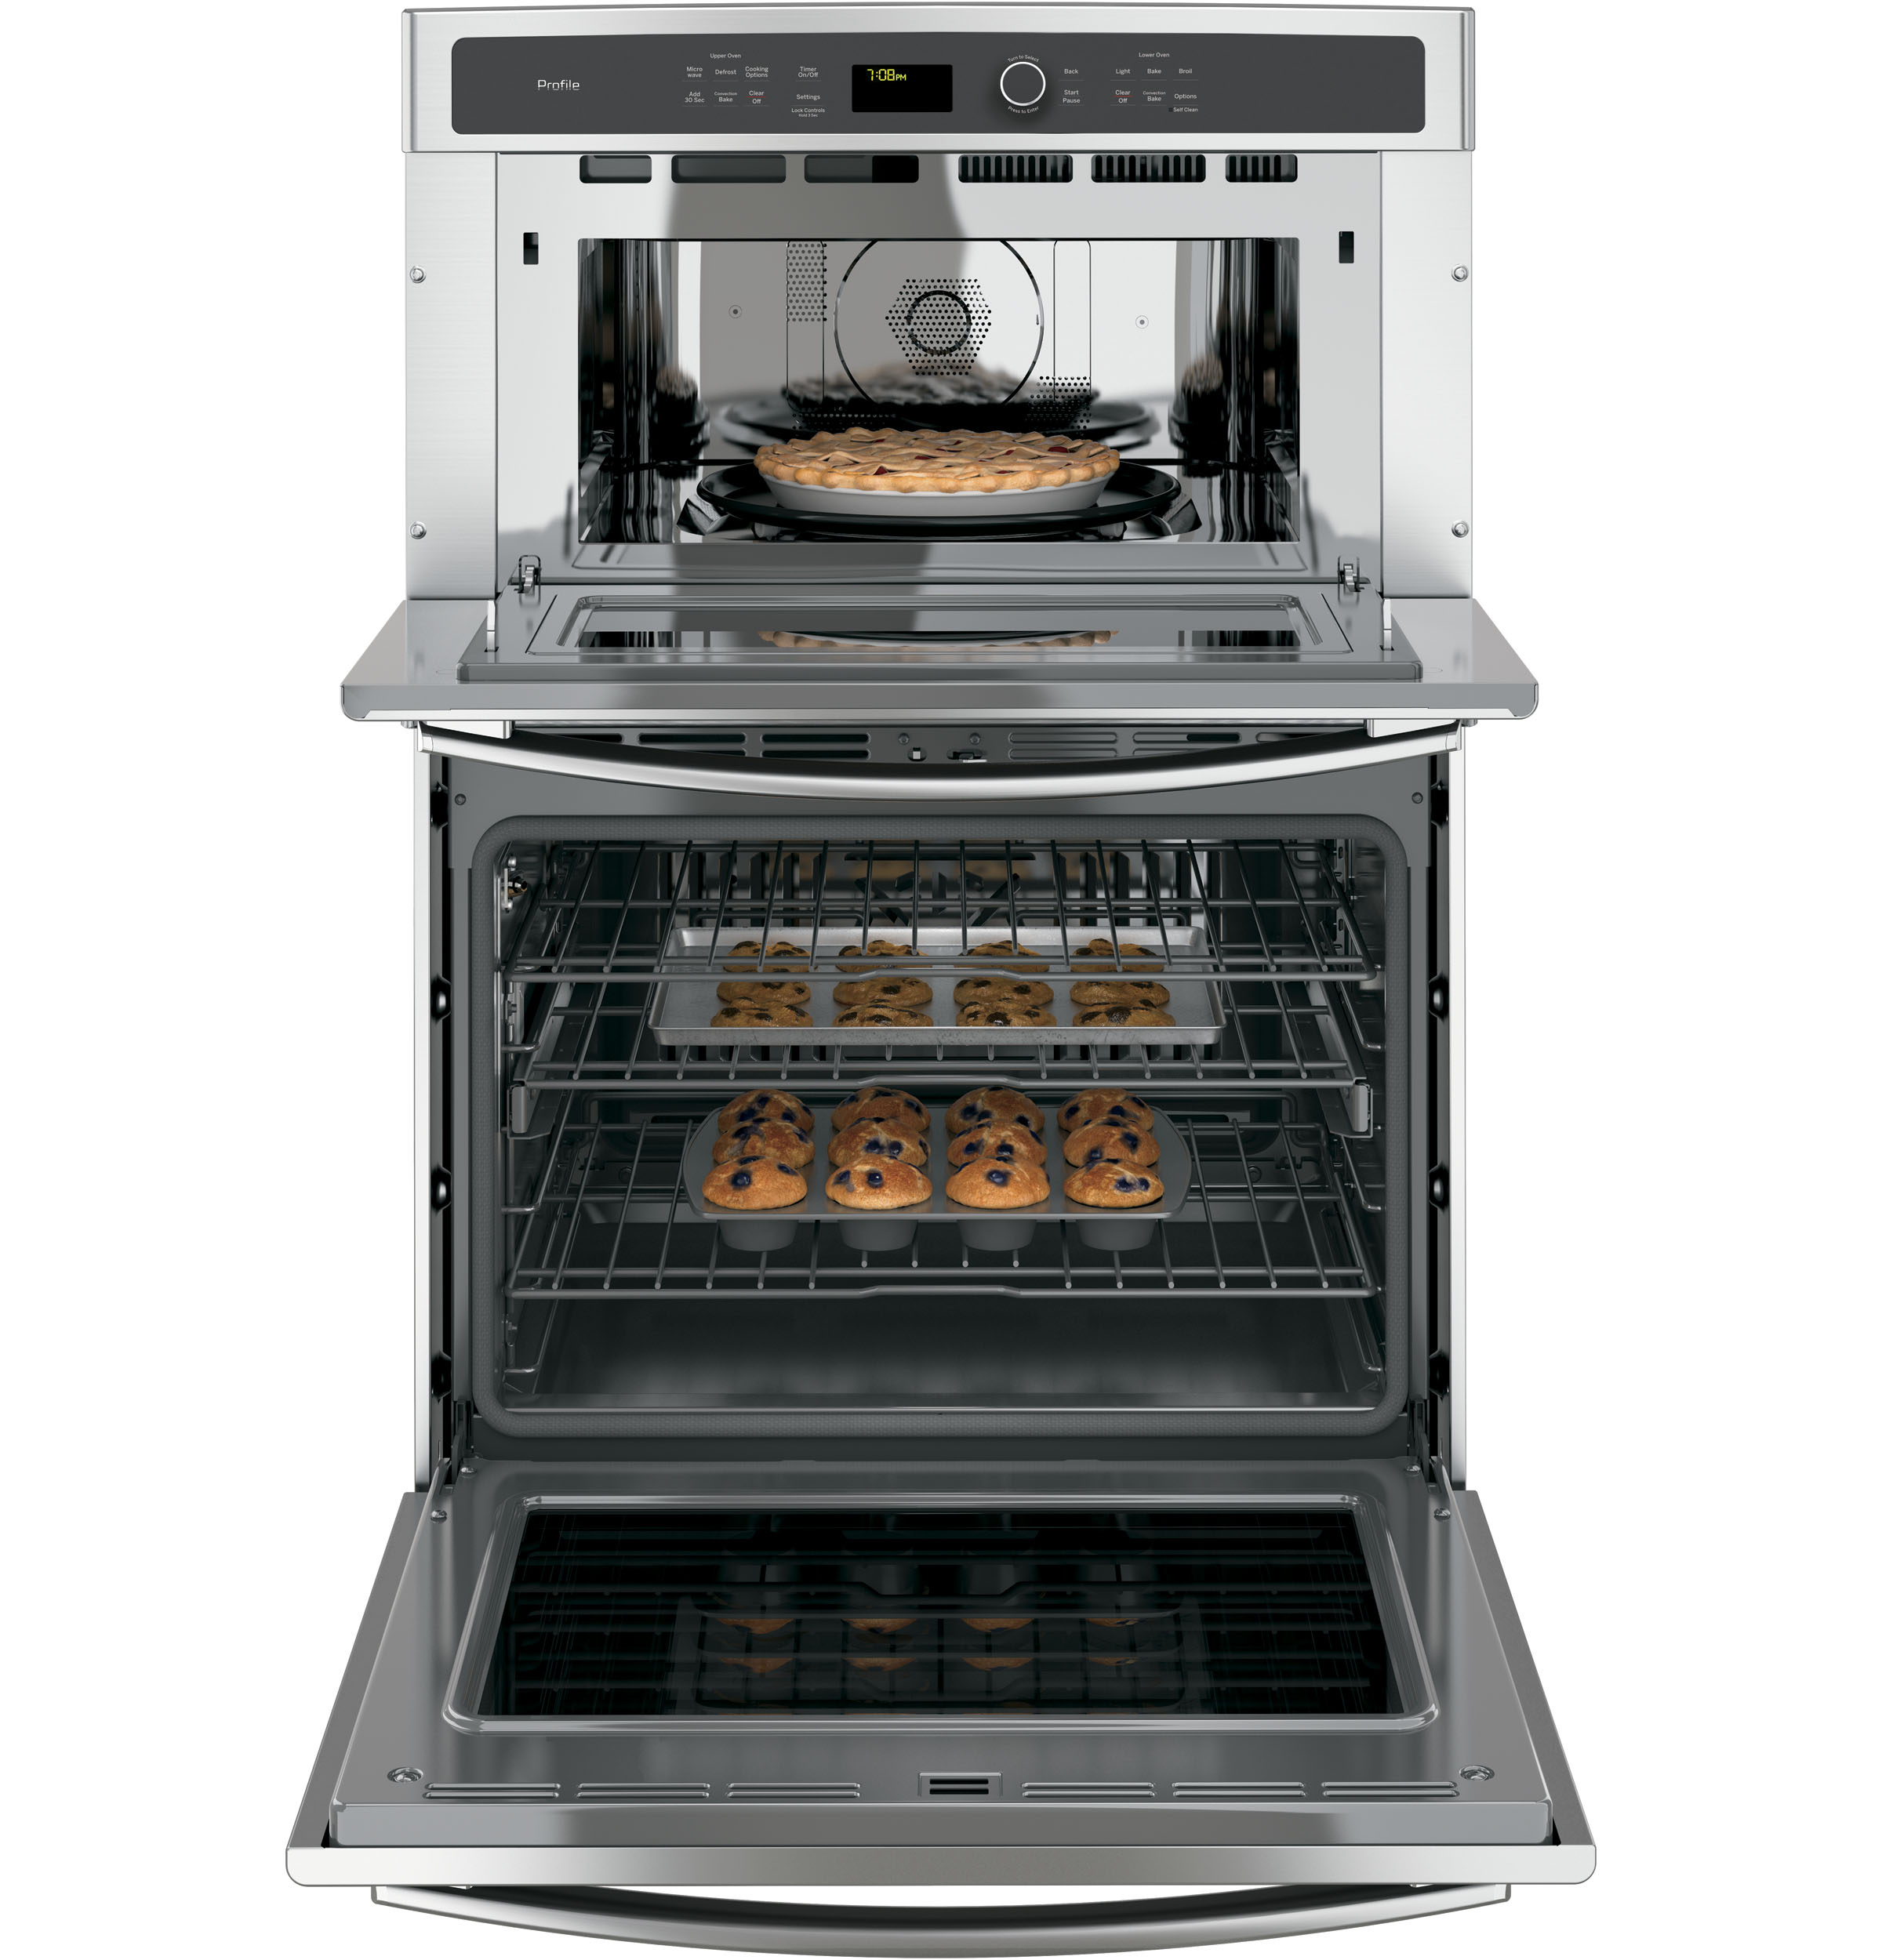 "Model: PT7800SHSS | GE Profile GE Profile™ Series 30"" Built-In Combination Convection Microwave/Convection Wall Oven"